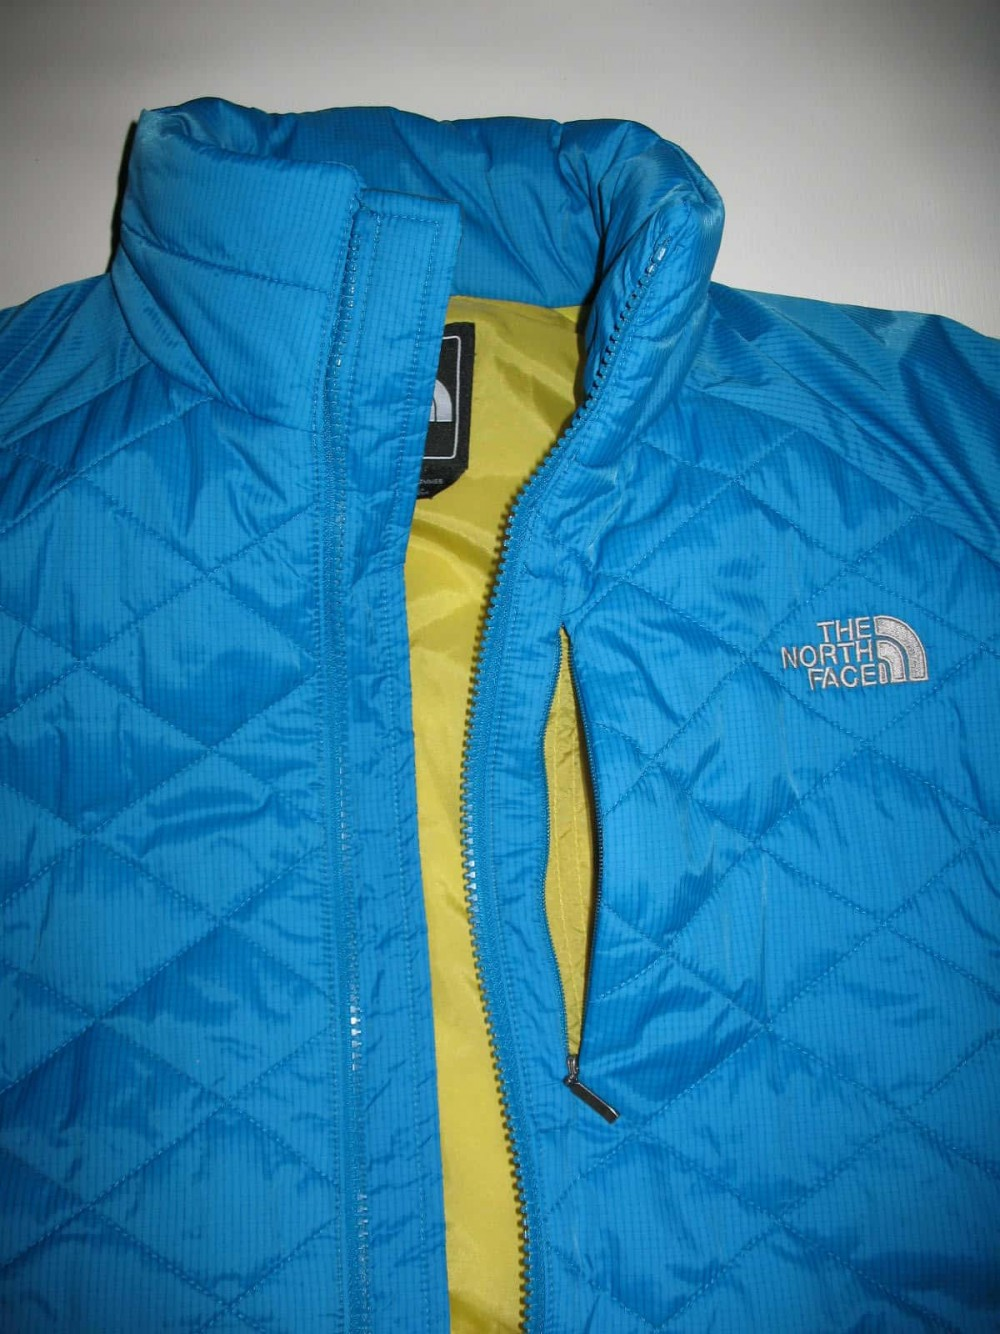 Куртка THE NORTH FACE red blaze jacket lady (размер М) - 5